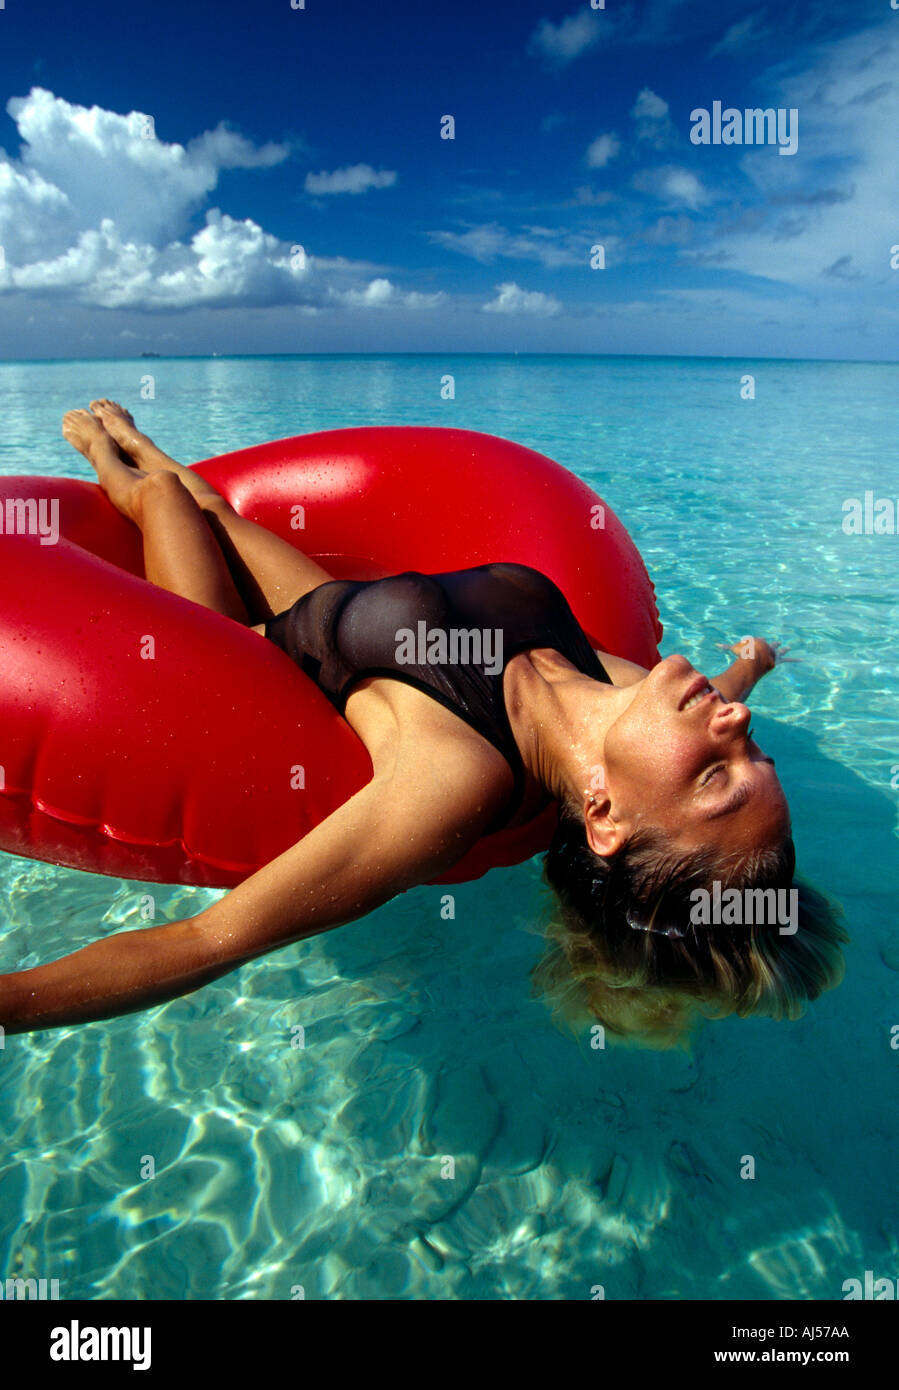 Cayman Islands Grand Cayman 7 Mile Beach woman on red float in water - Stock Image